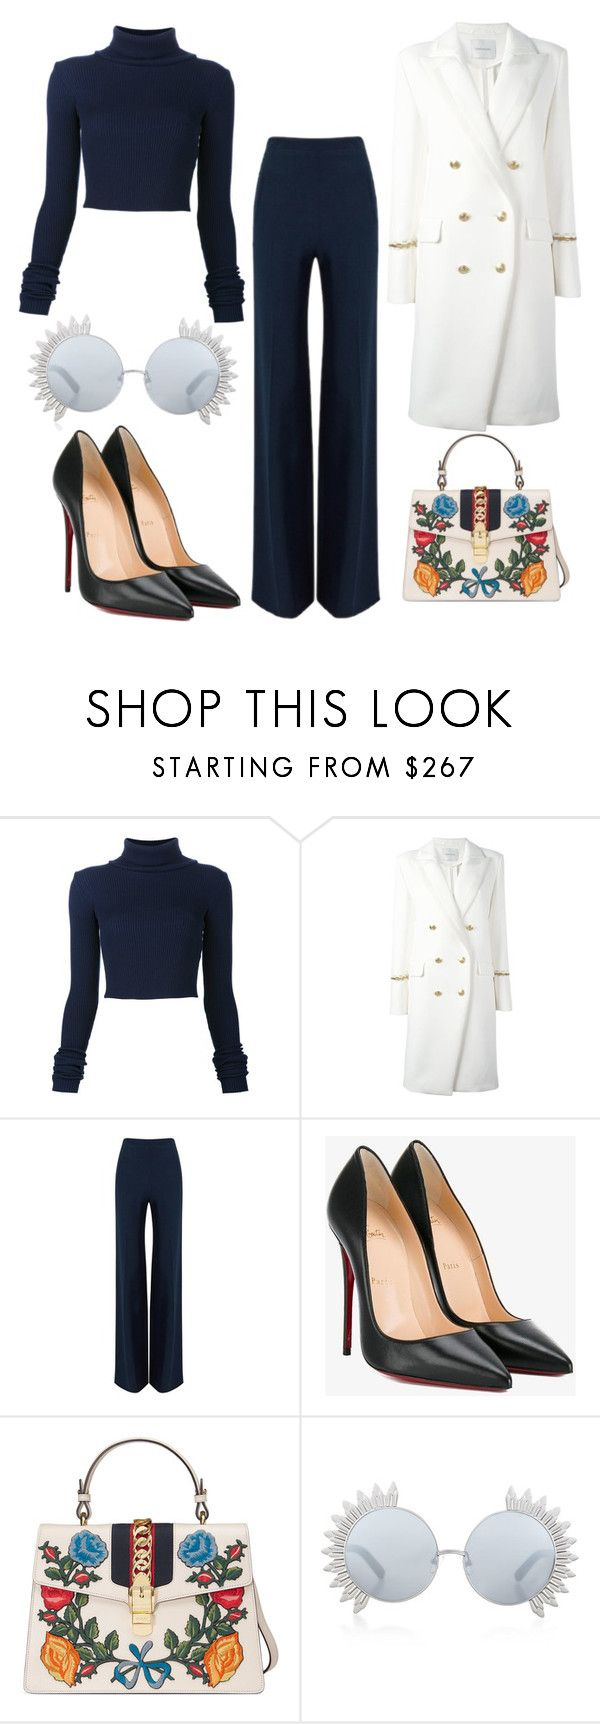 """""""Untitled #1470"""" by dani-gracik on Polyvore featuring Jacquemus, Pierre Balmain, Roland Mouret, Christian Louboutin, Gucci and Linda Farrow"""